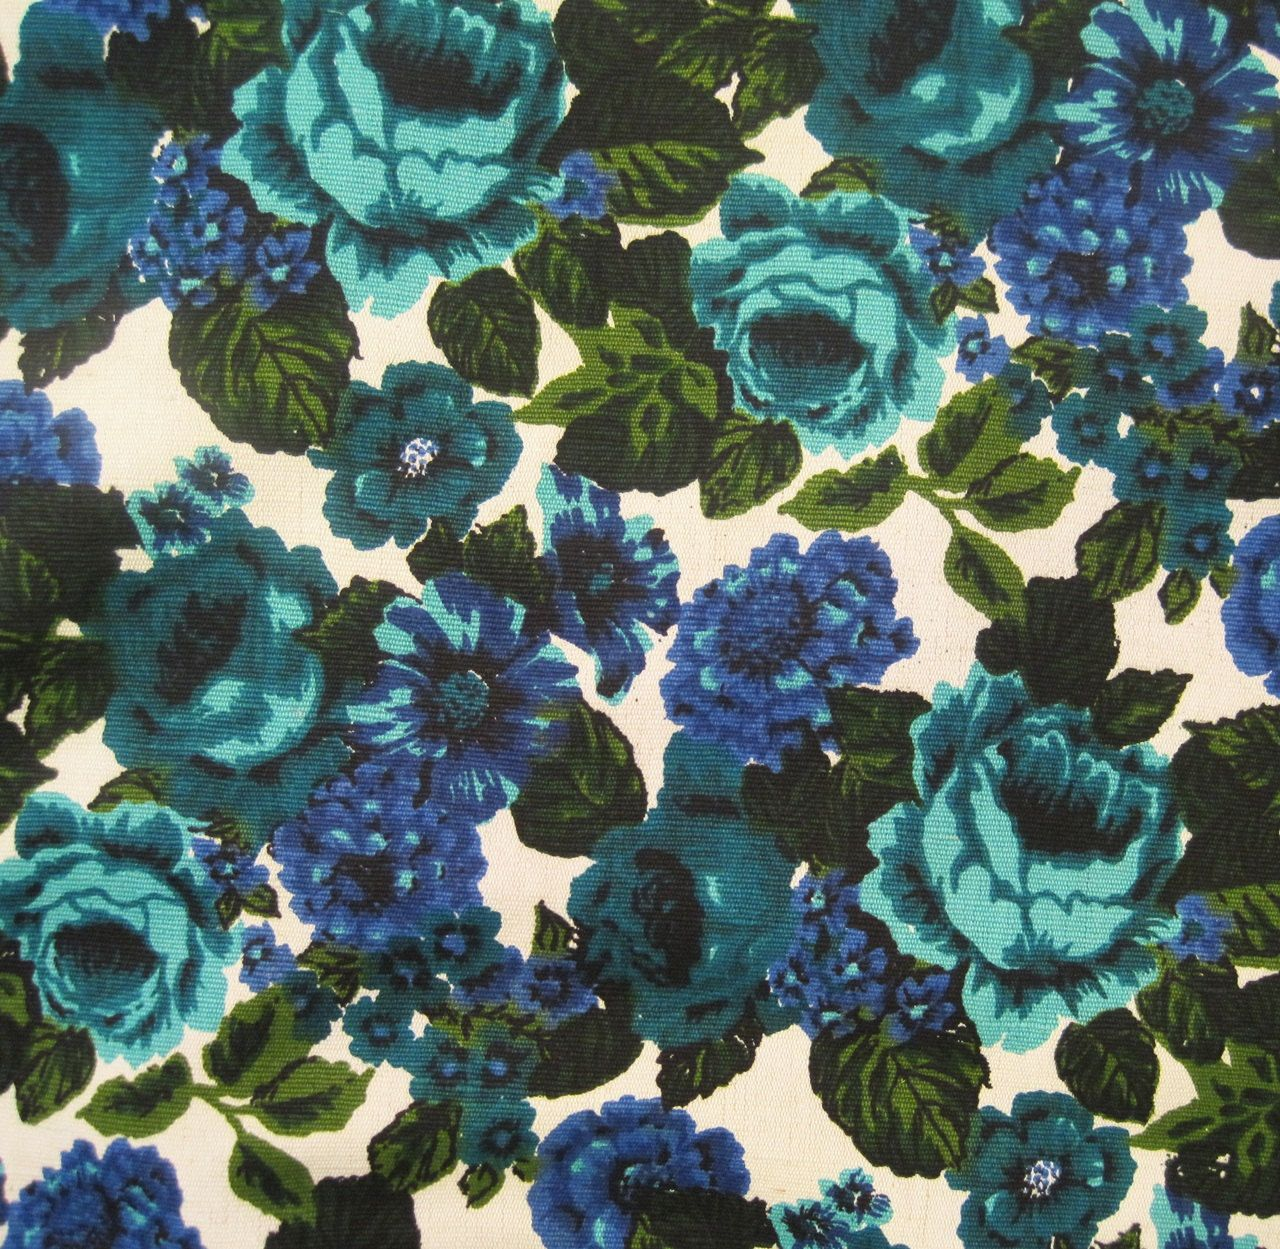 60s Fabric Vintage Floral Upholstery Fabric Cotton Linen Blue Green Floral Upholstery Vintage Floral Wallpapers Floral Upholstery Fabric